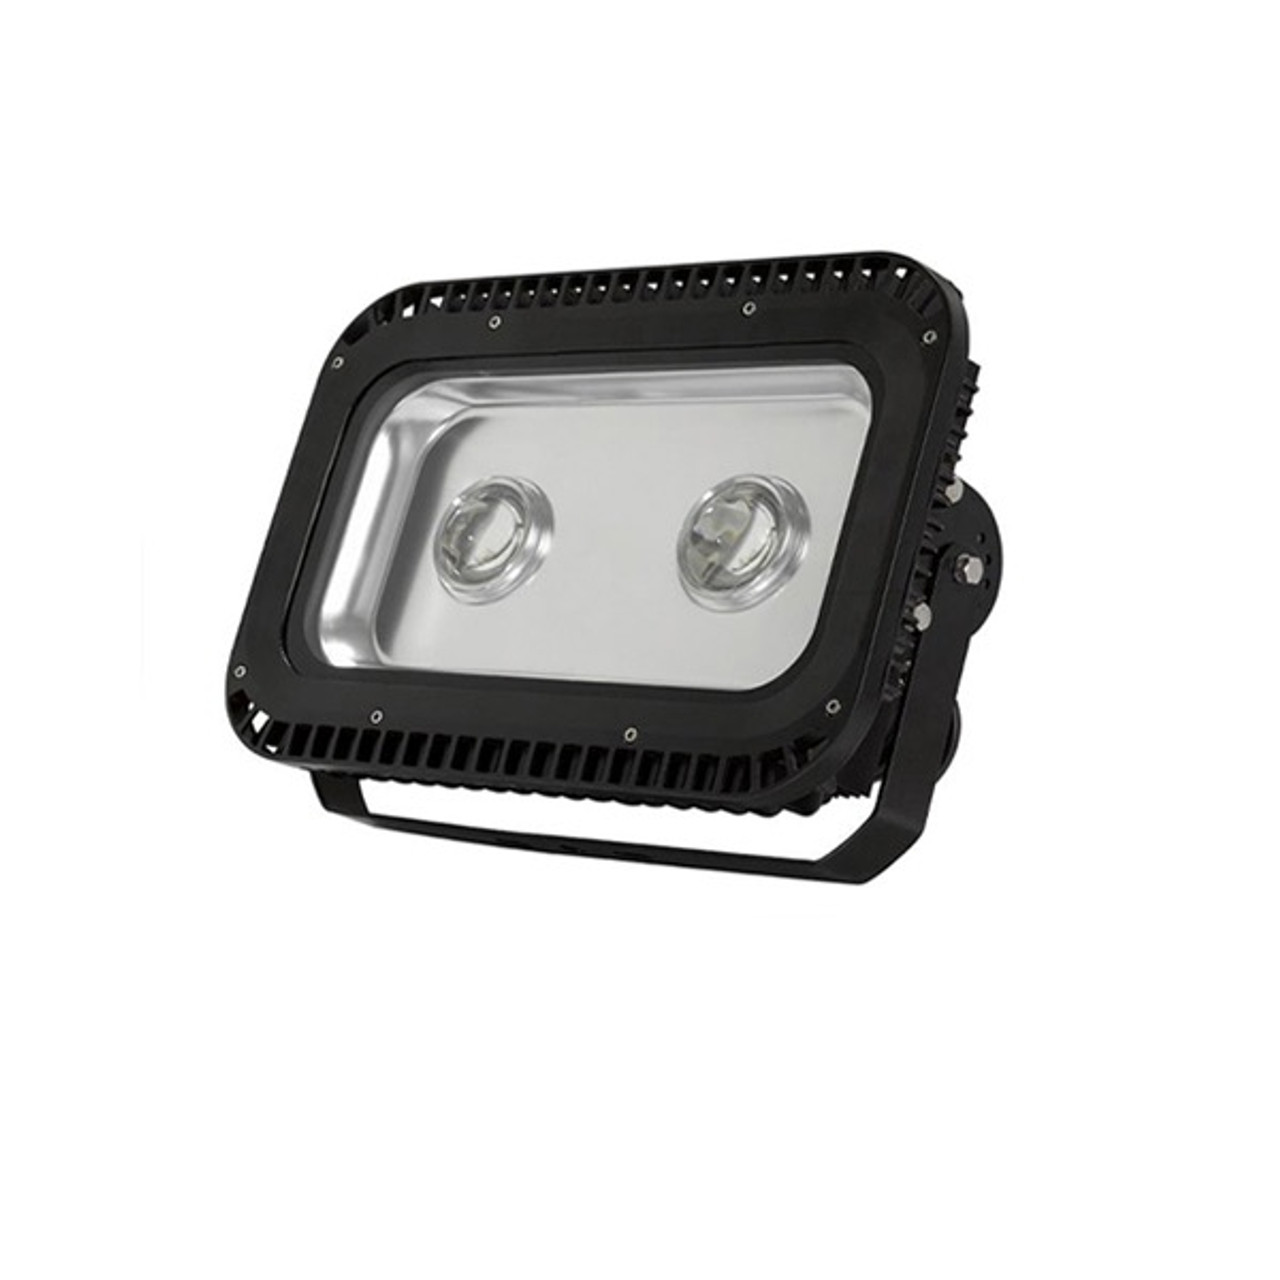 FZ-120 High End Commercial LED Powered Flagpole Light